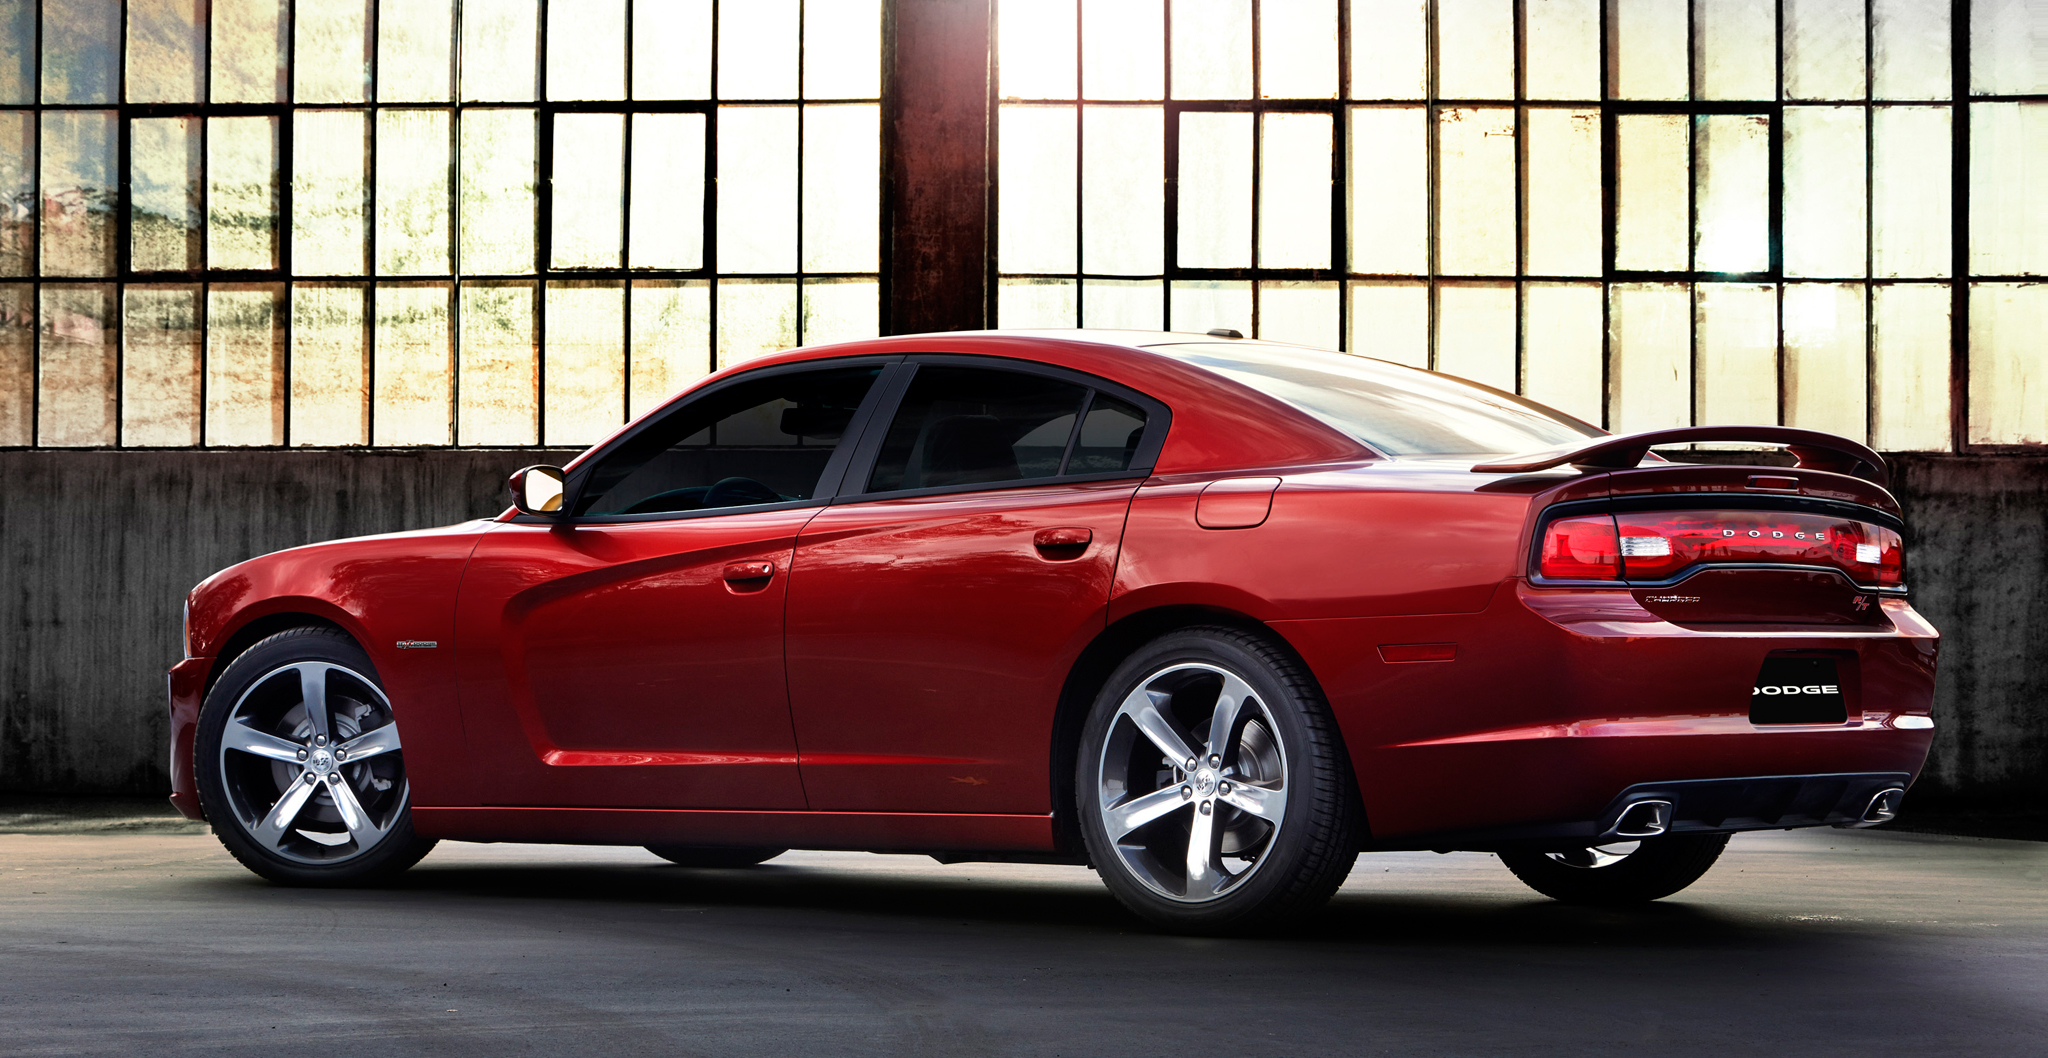 2014 Dodge Charger #25